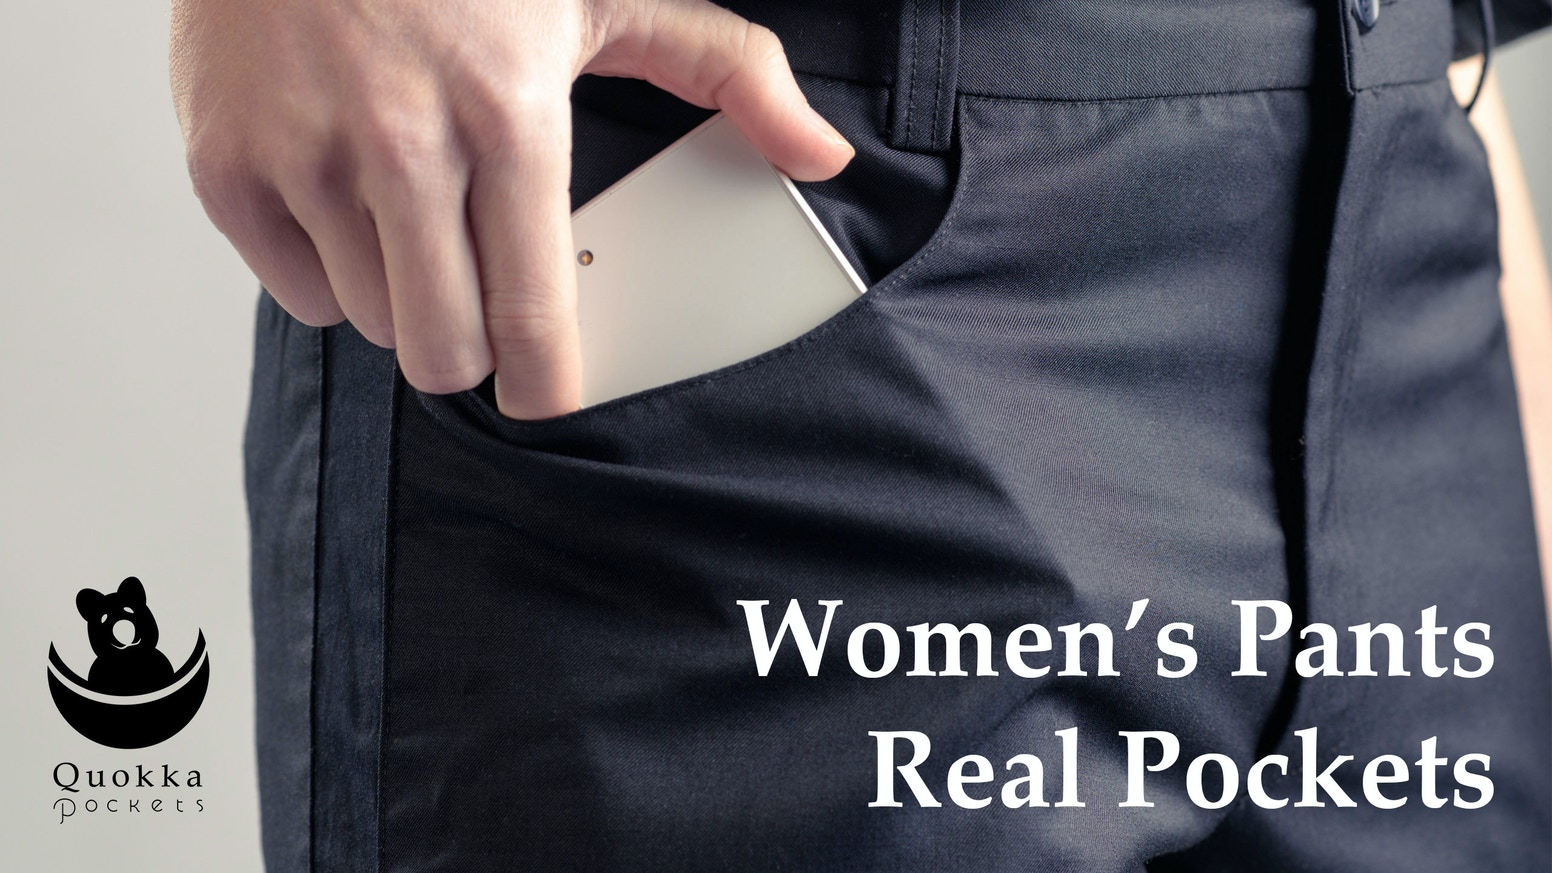 We believe women deserve pants with pockets big enough to put a phone in. Or your hand. Or both at the same time. So we're making them.